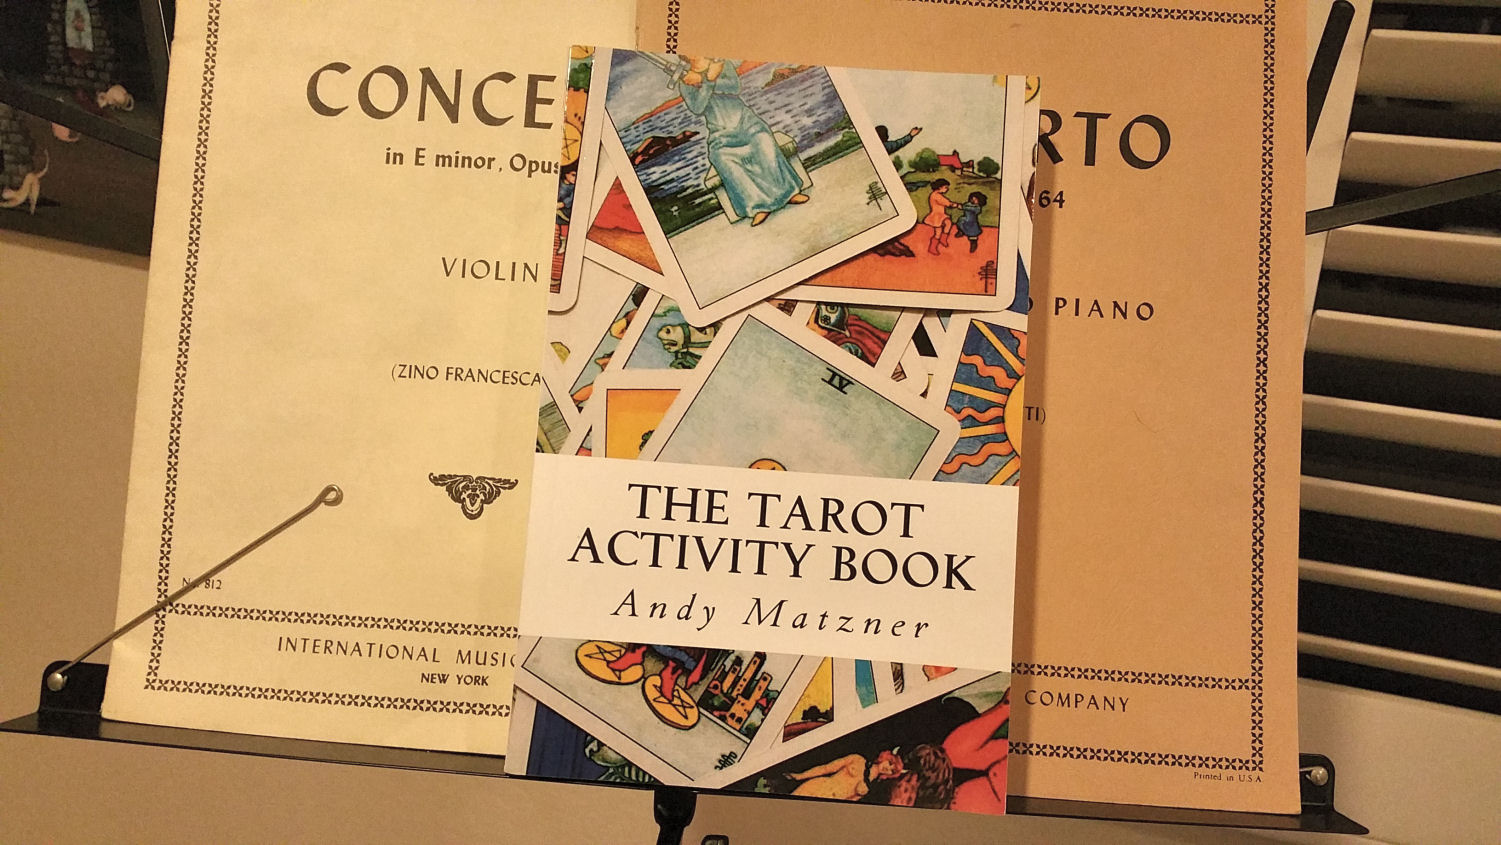 Review Of The Tarot Activity Book By Andy Matzner